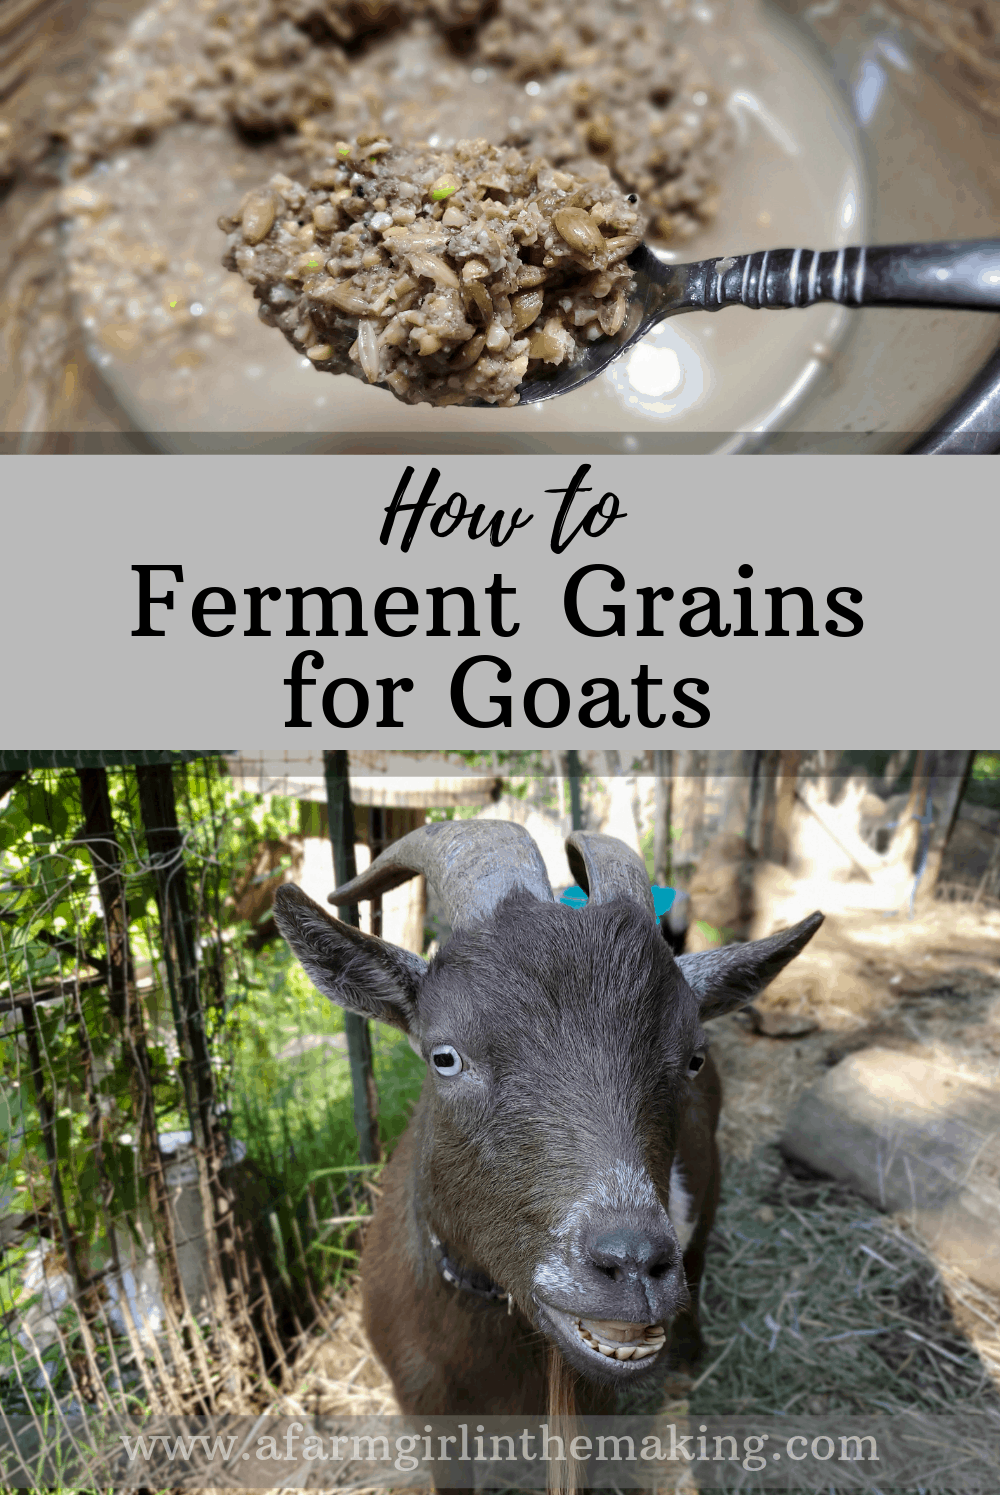 feeding goats fermented grains